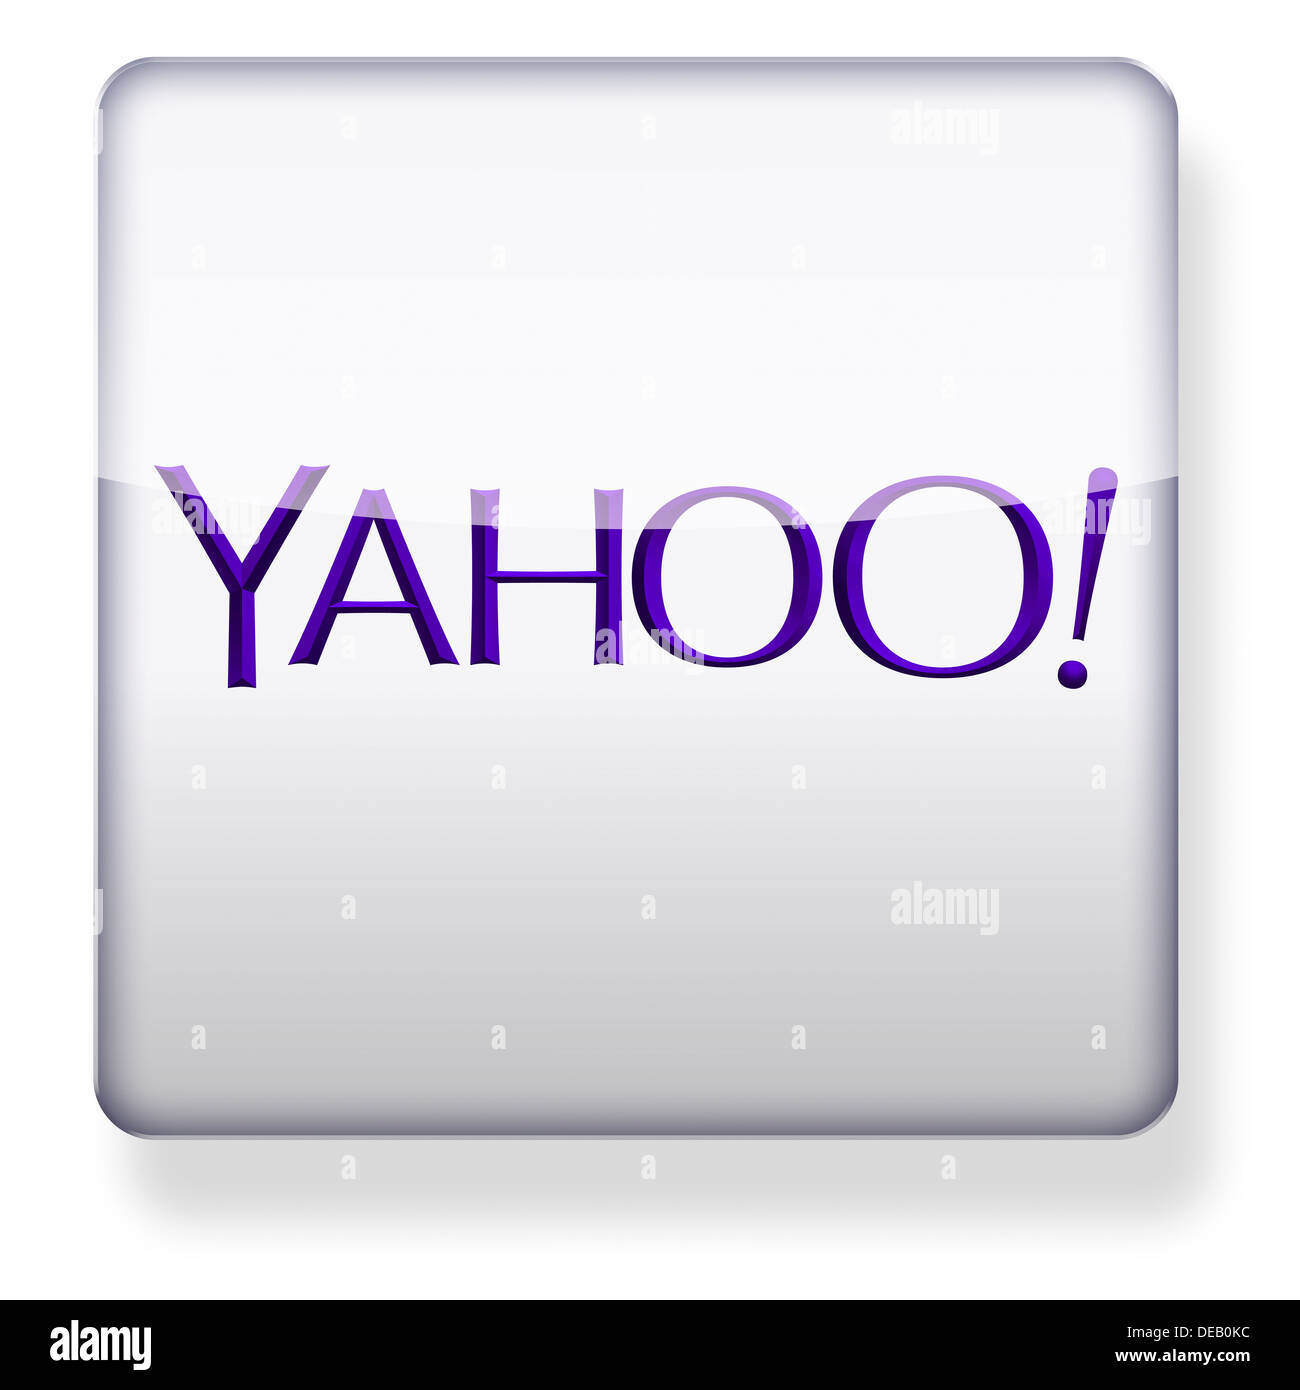 NEW Yahoo logo as an app icon. Clipping path included. - Stock Image